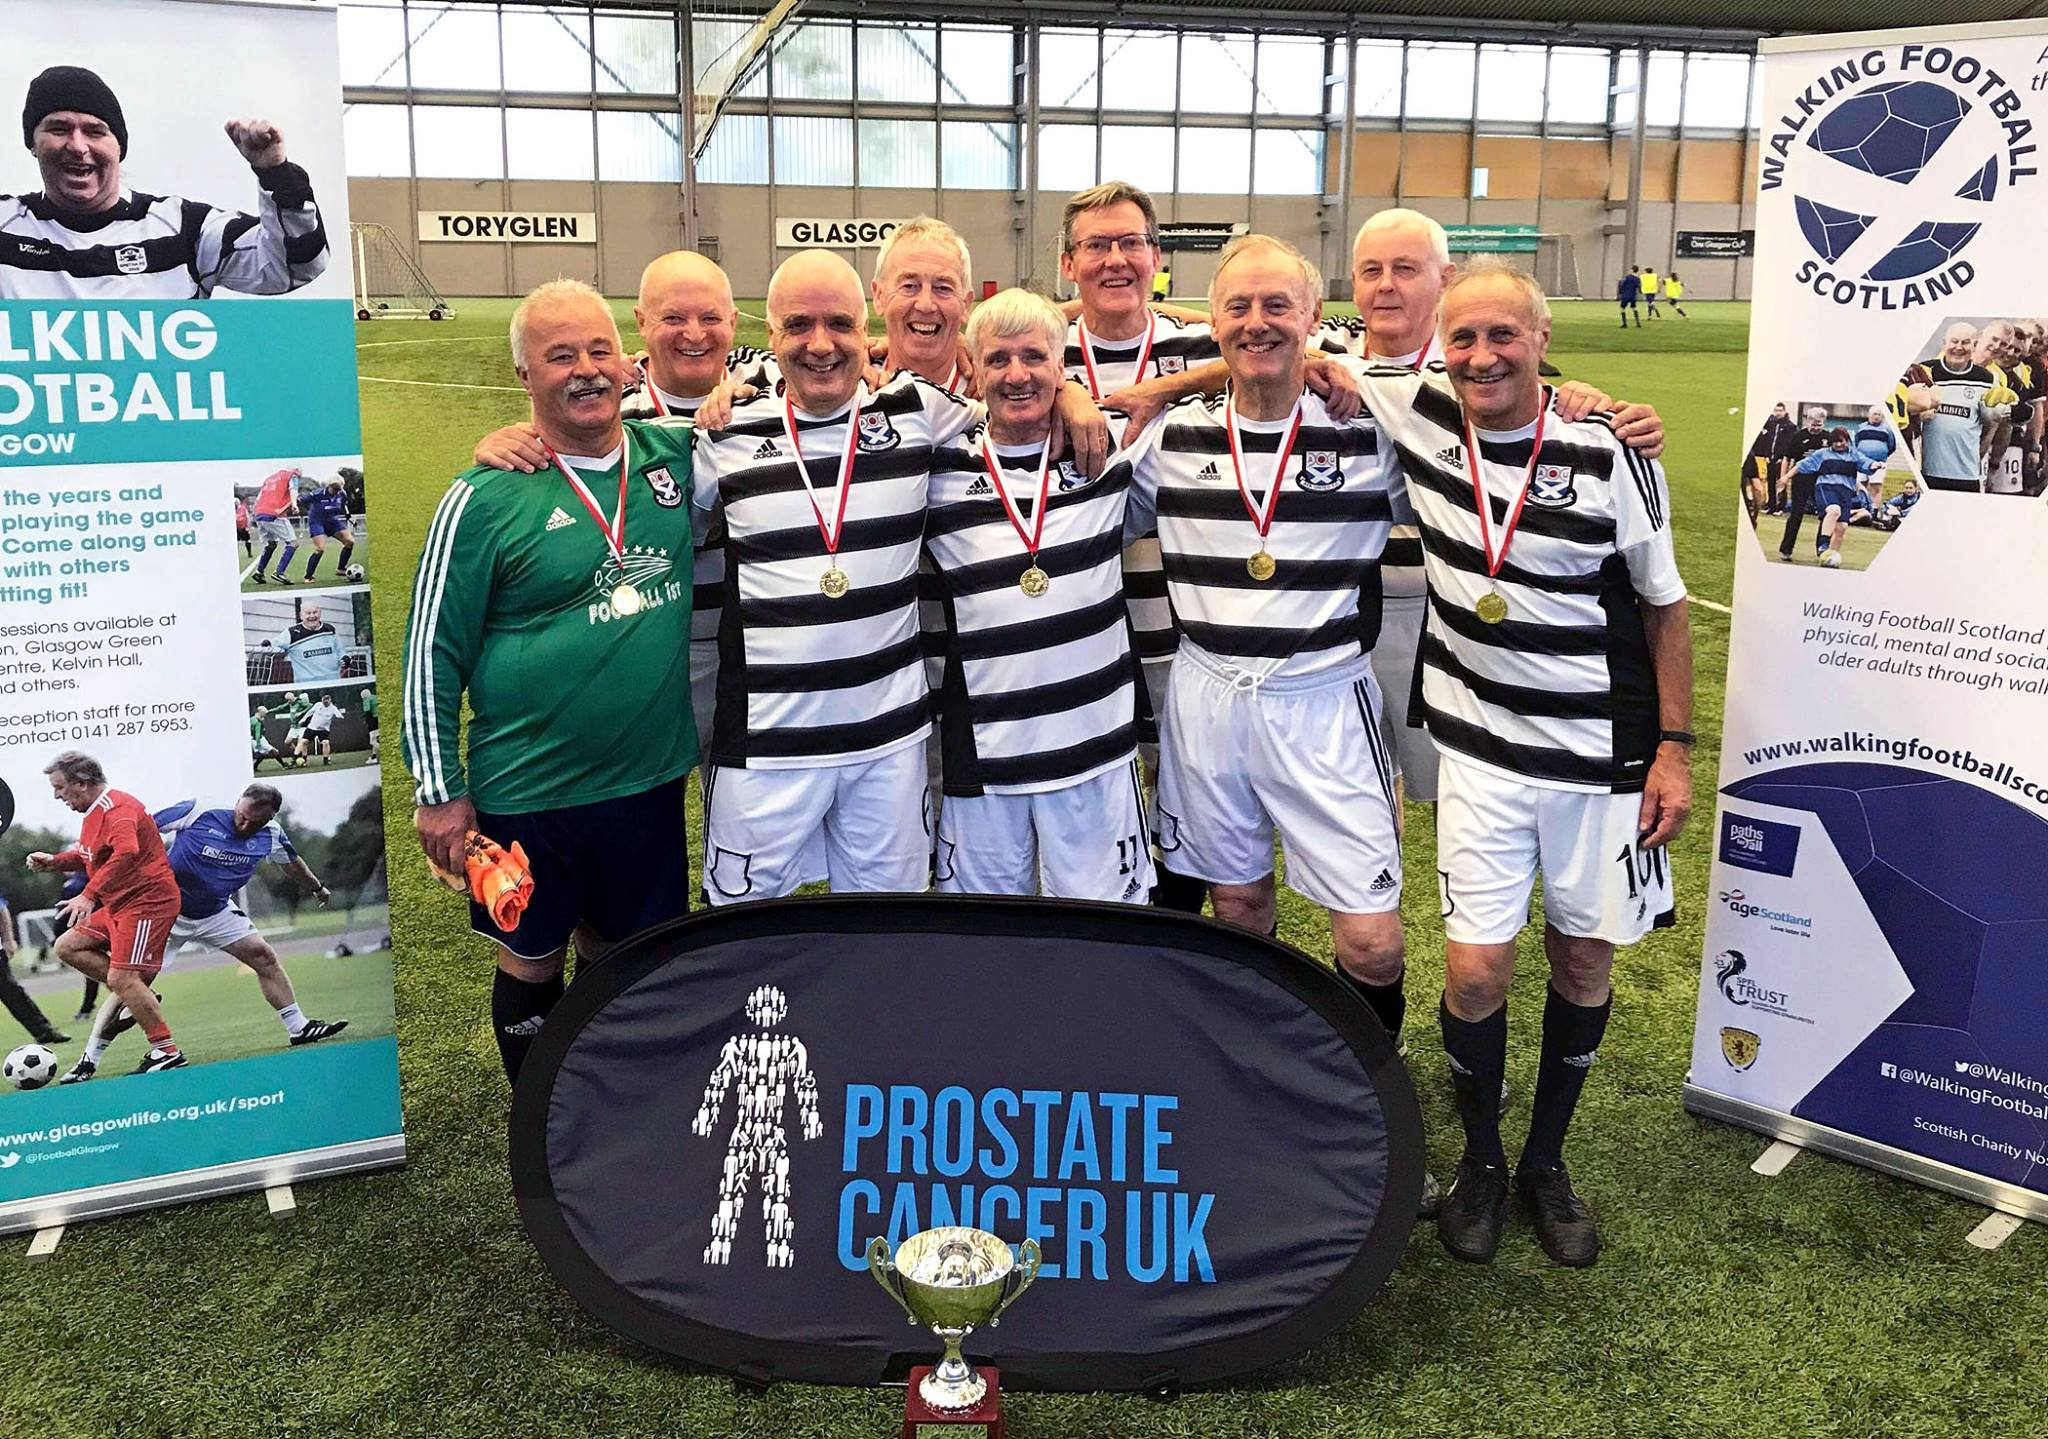 GLORIOUS TRIUMPH: Ayr United won the Walking Football event.